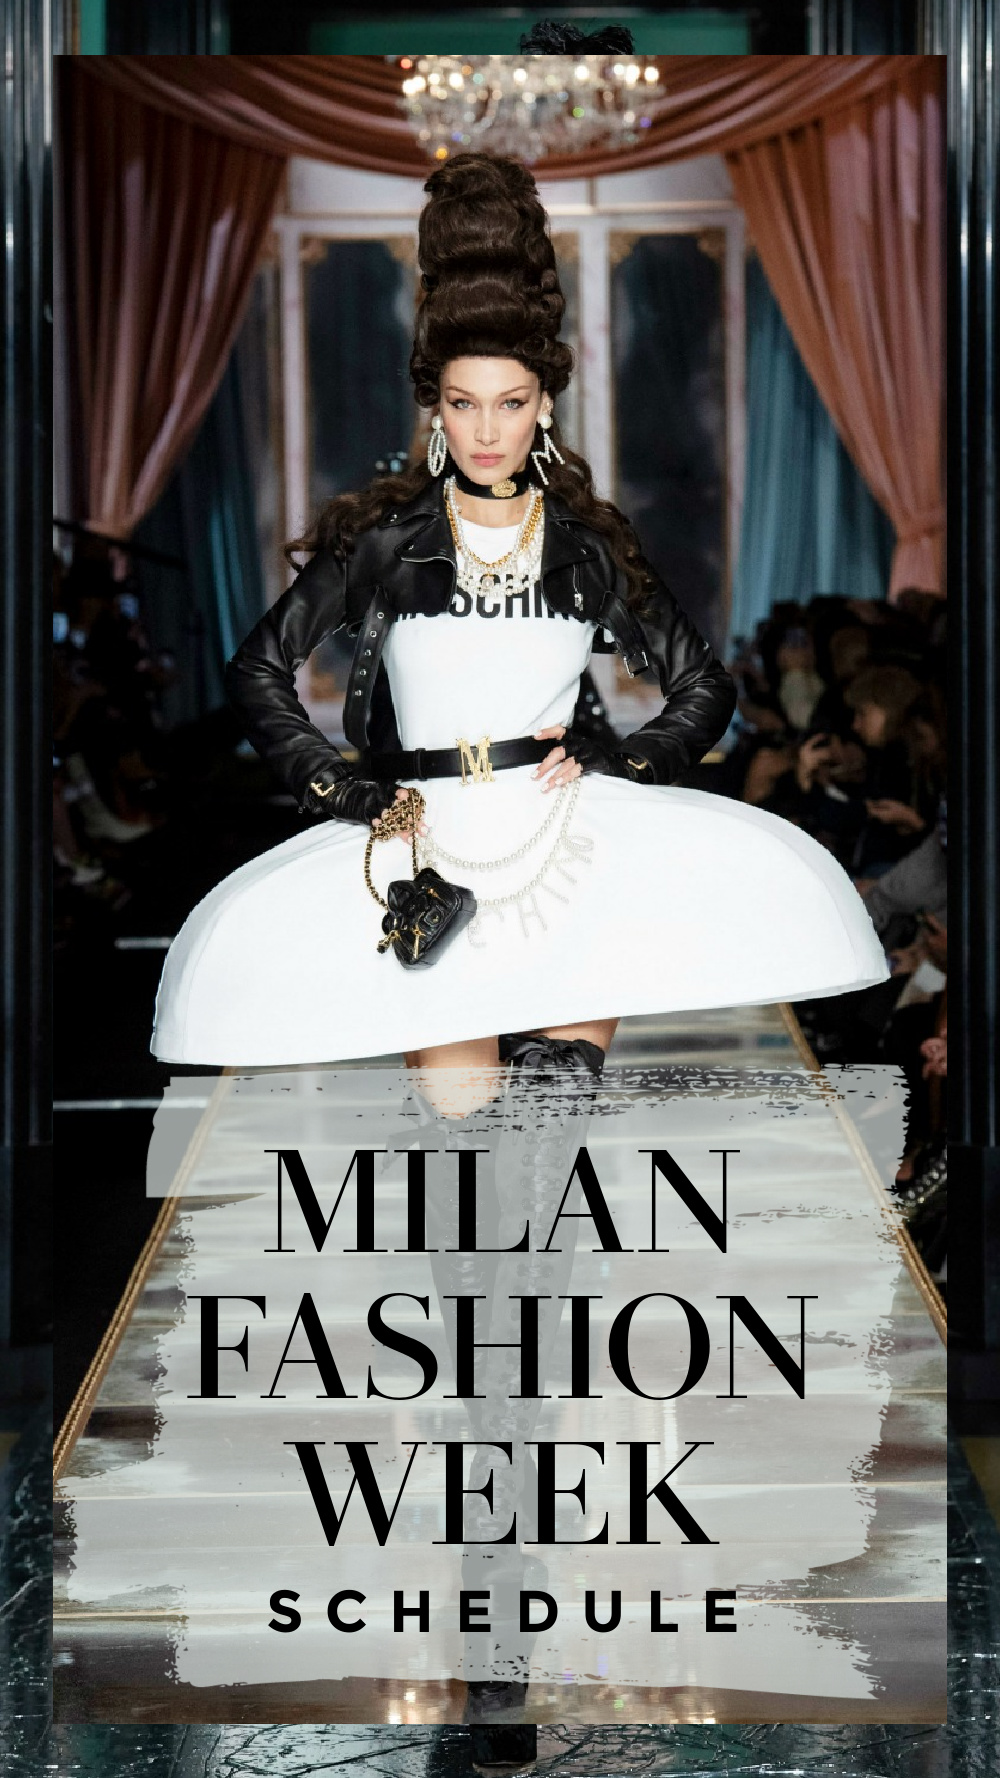 The Official MFW Fall 2020 schedule includes a mix of digital and limited in-person events. I DreaminLace.com #FashionWeek #MilanFashion #LuxuryFashion